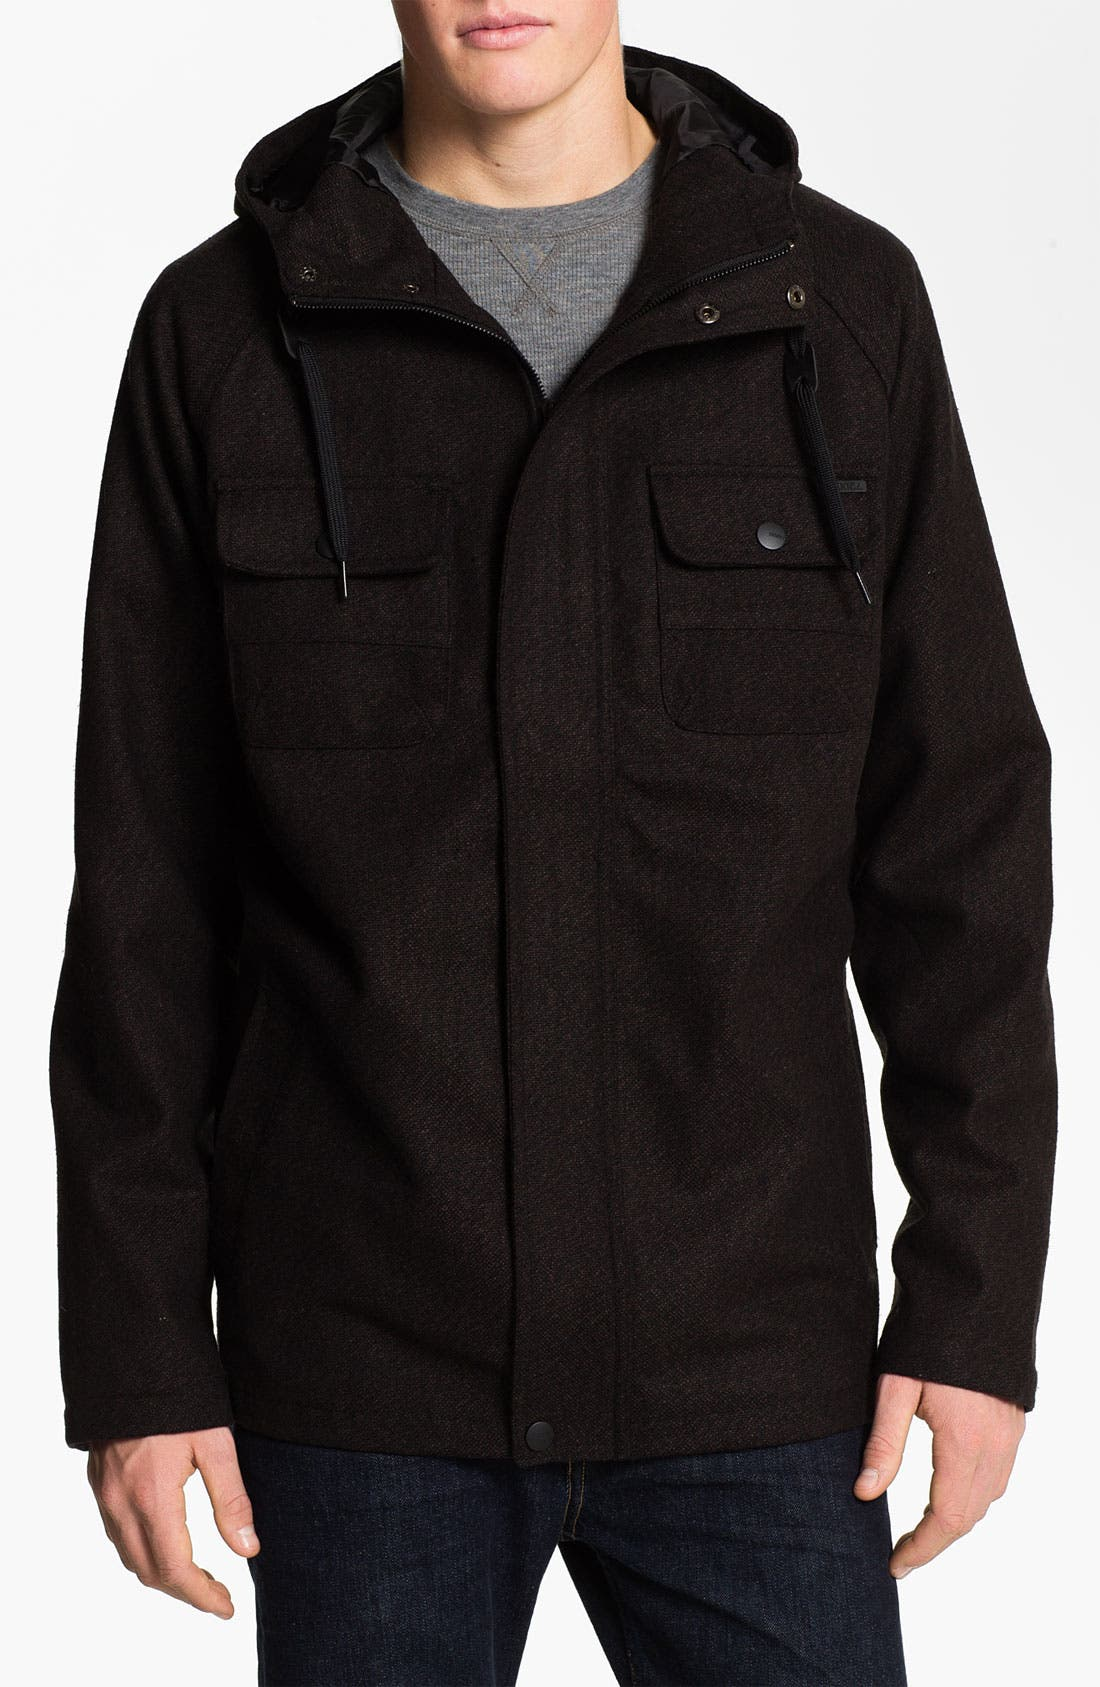 Alternate Image 1 Selected - Ezekiel 'Night Watch' Jacket